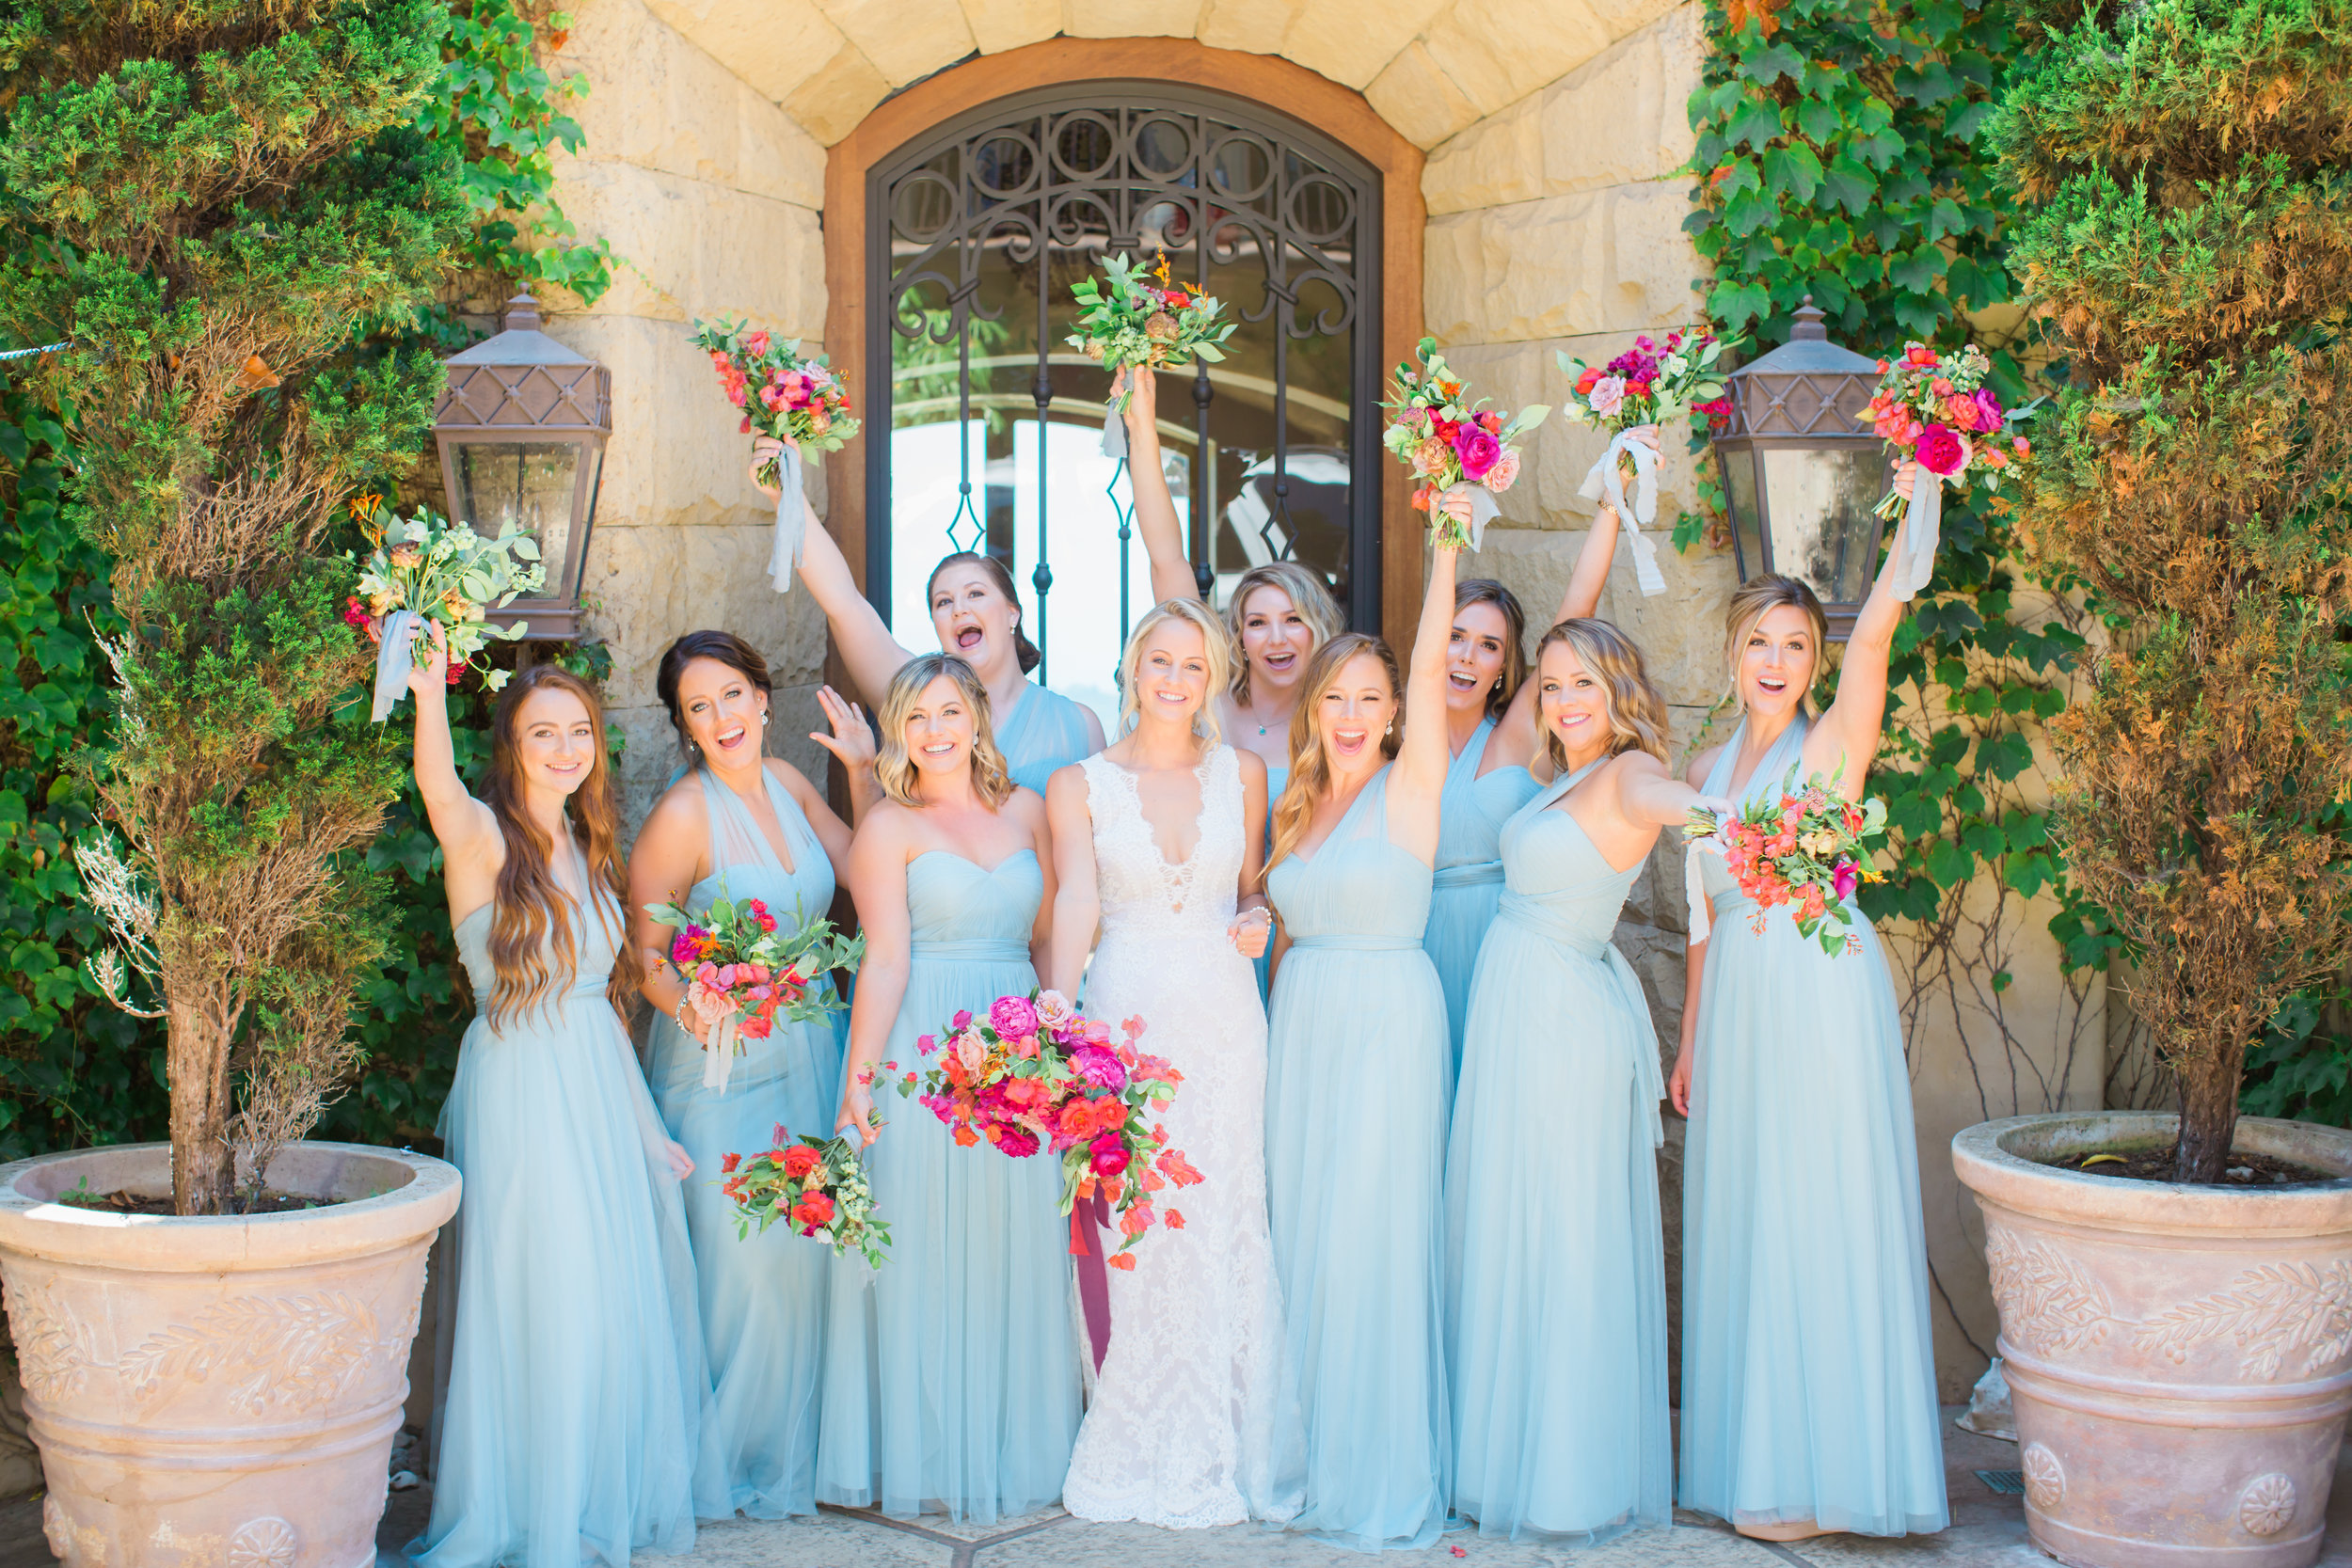 www.santabarbarawedding.com | James and Jess Photography | Our Lady of Mount Carmel | Amazing Day Events | TEAM Hair & Makeup | Double Take | La Fleur du Jour | Bride and Bridesmaids